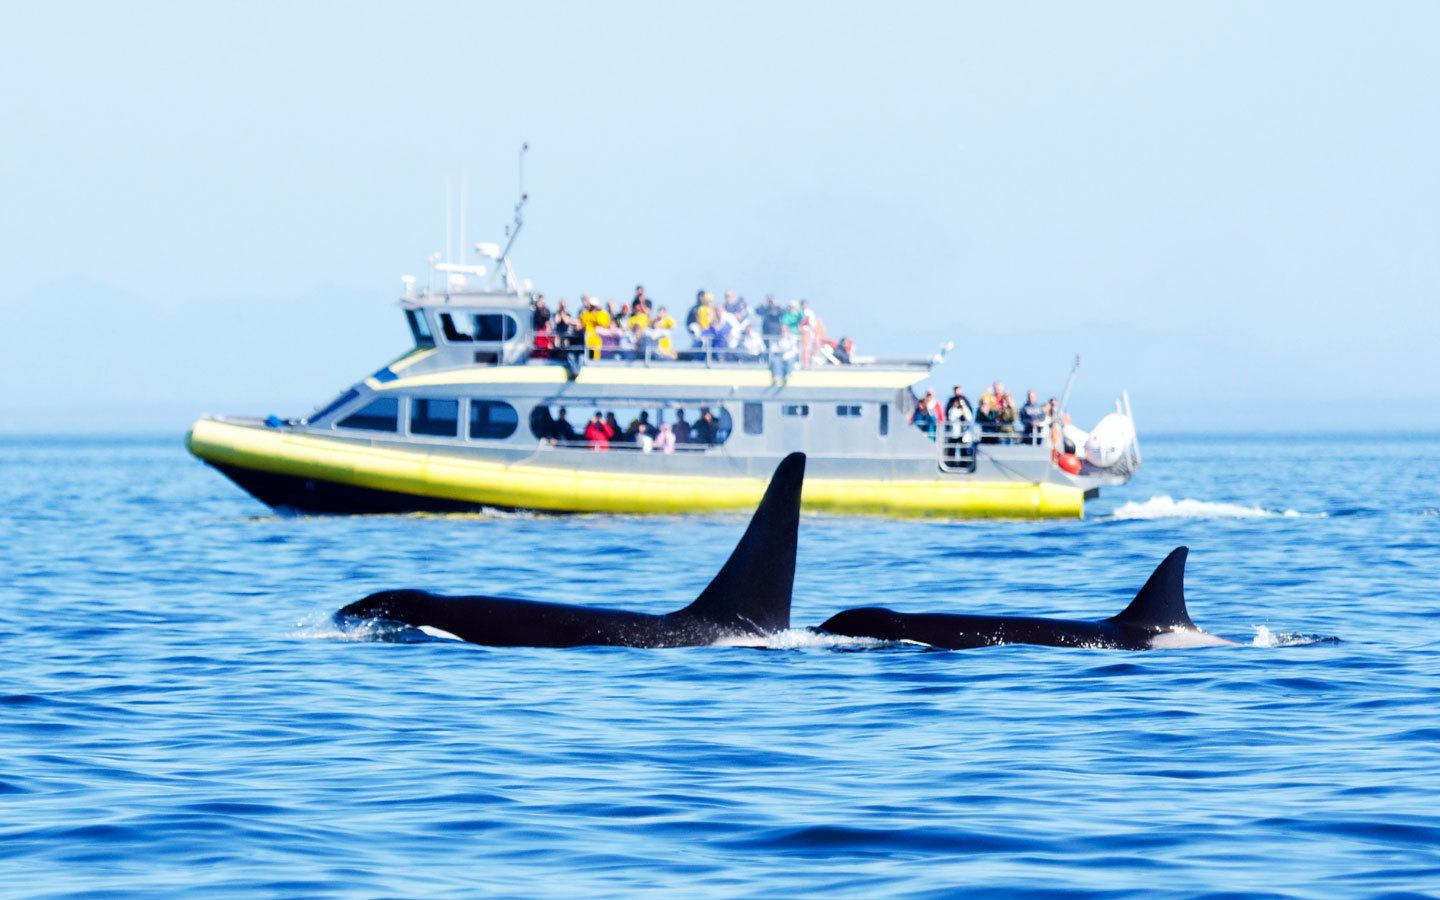 Whale watching off the coast of Vancouver Island